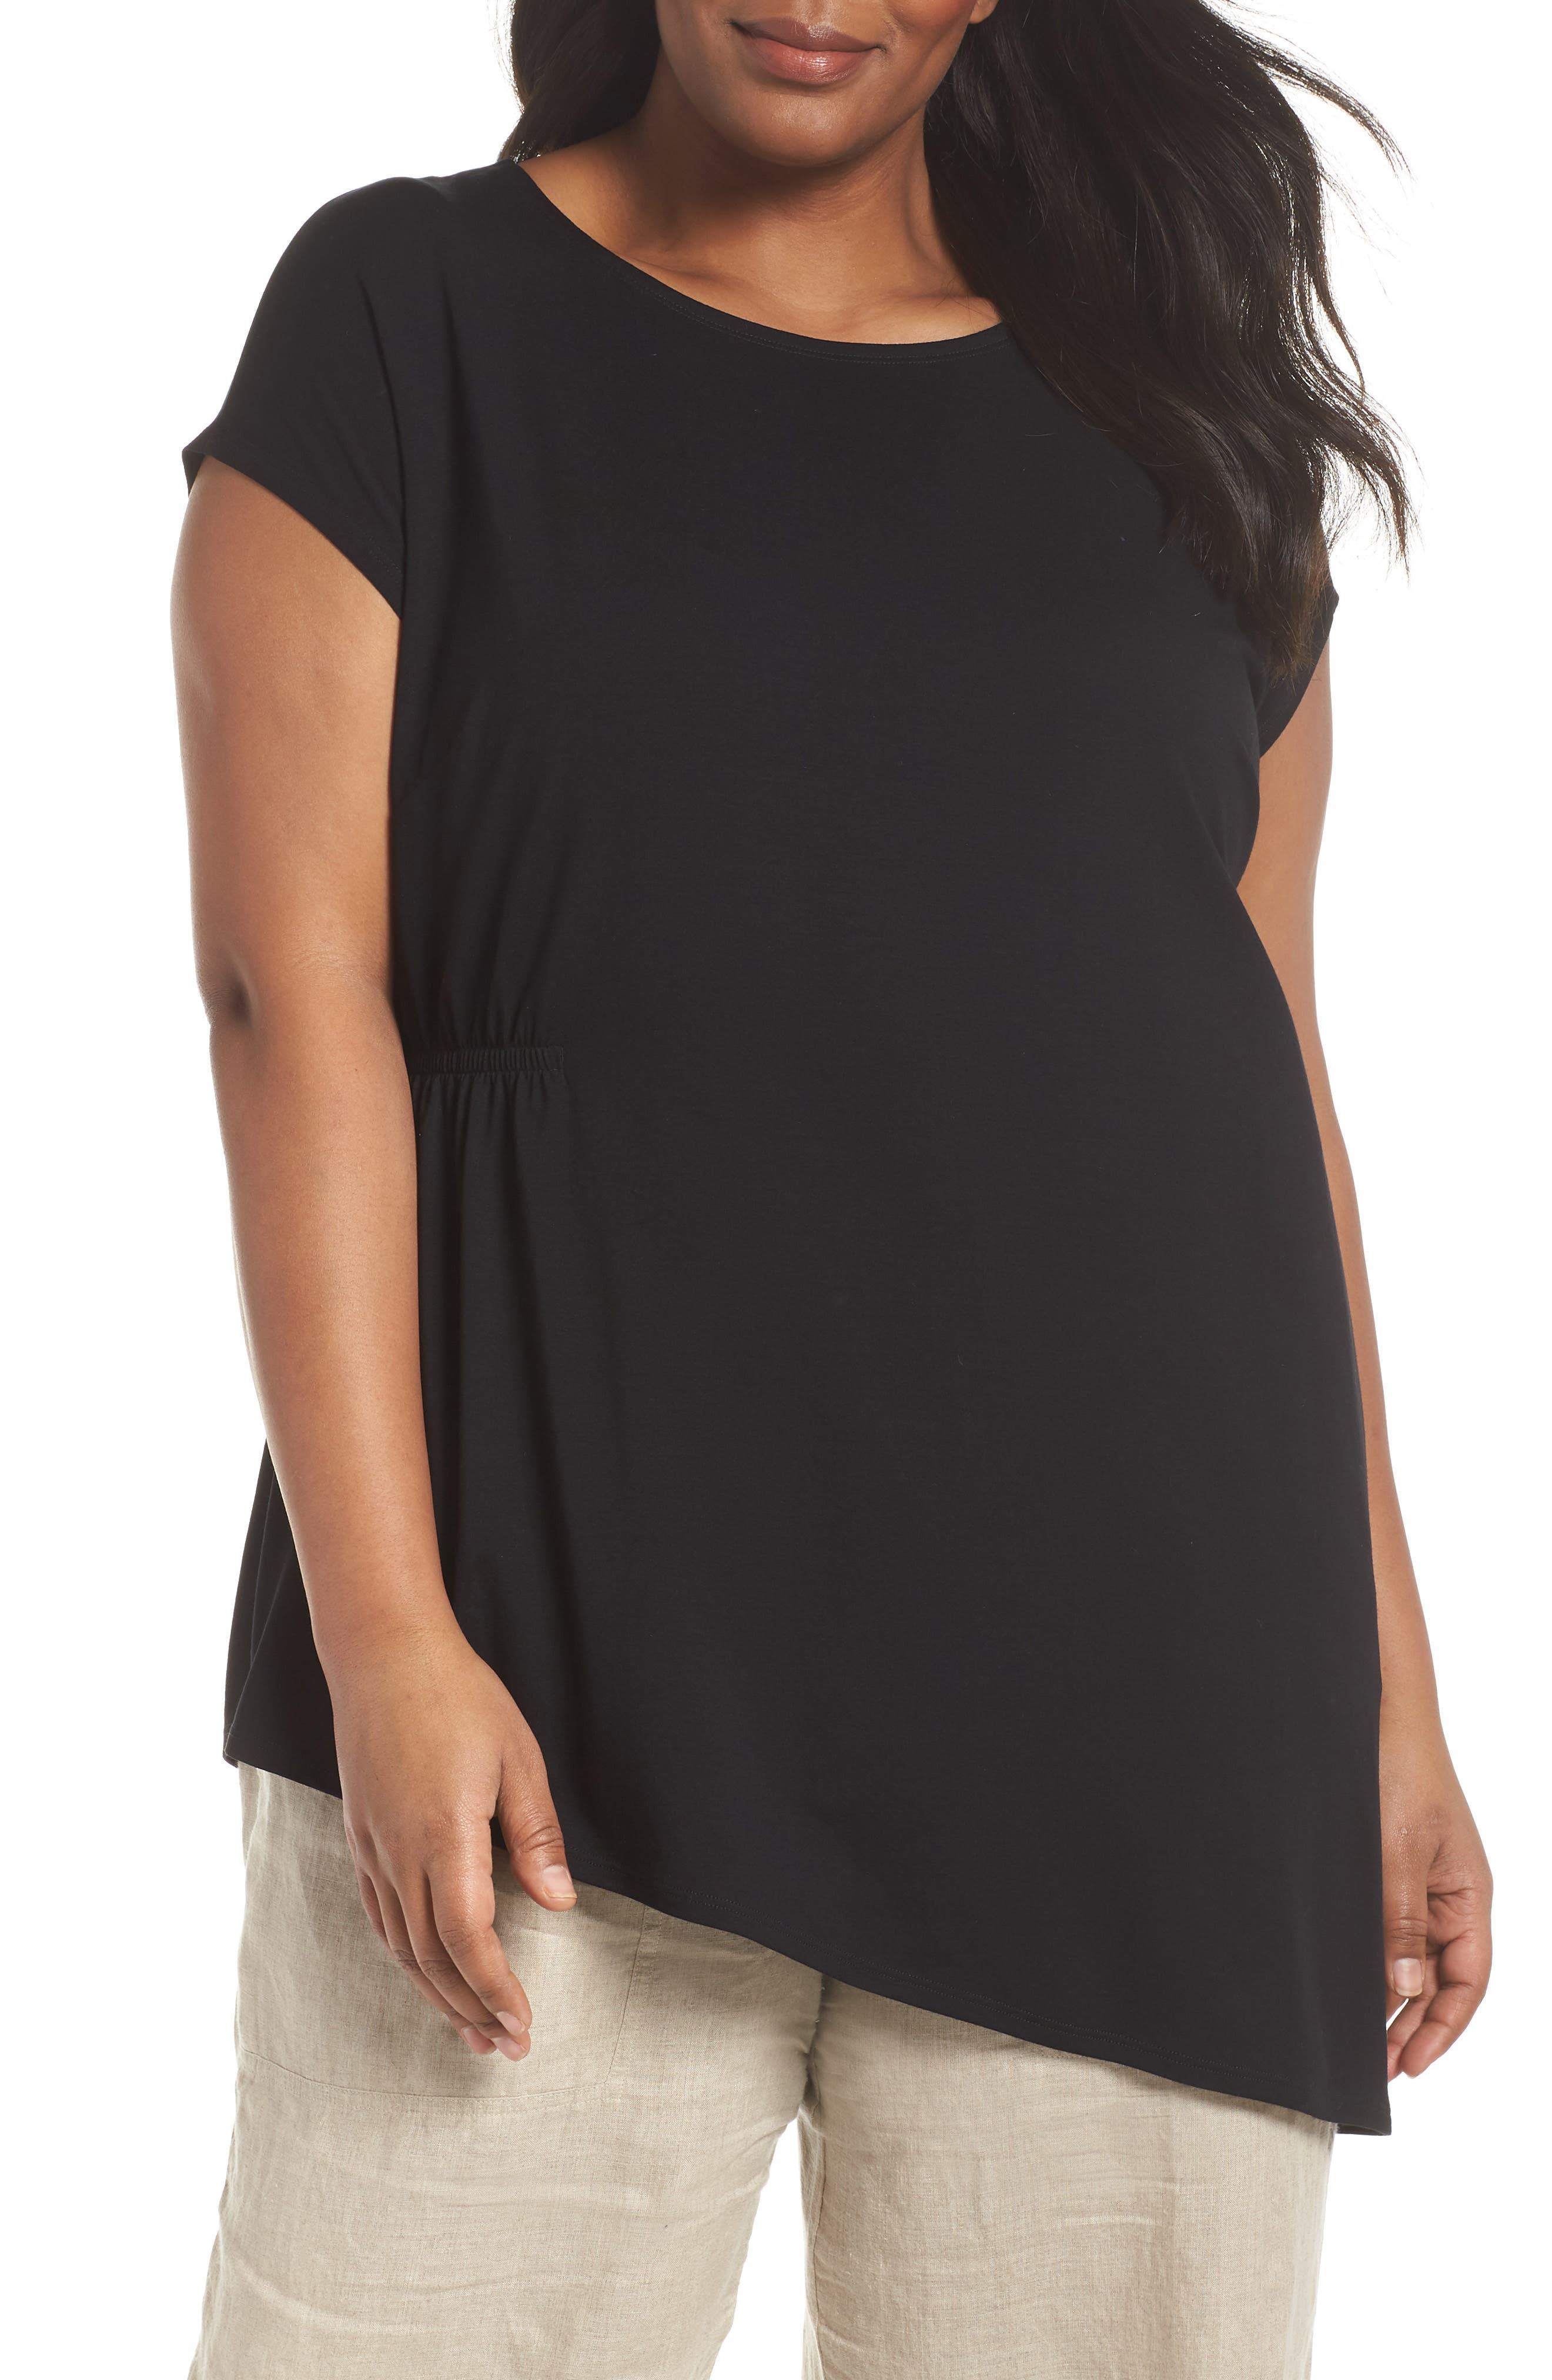 Alternate Image 1 Selected - Eileen Fisher Asymmetrical Jersey Top (Plus Size)